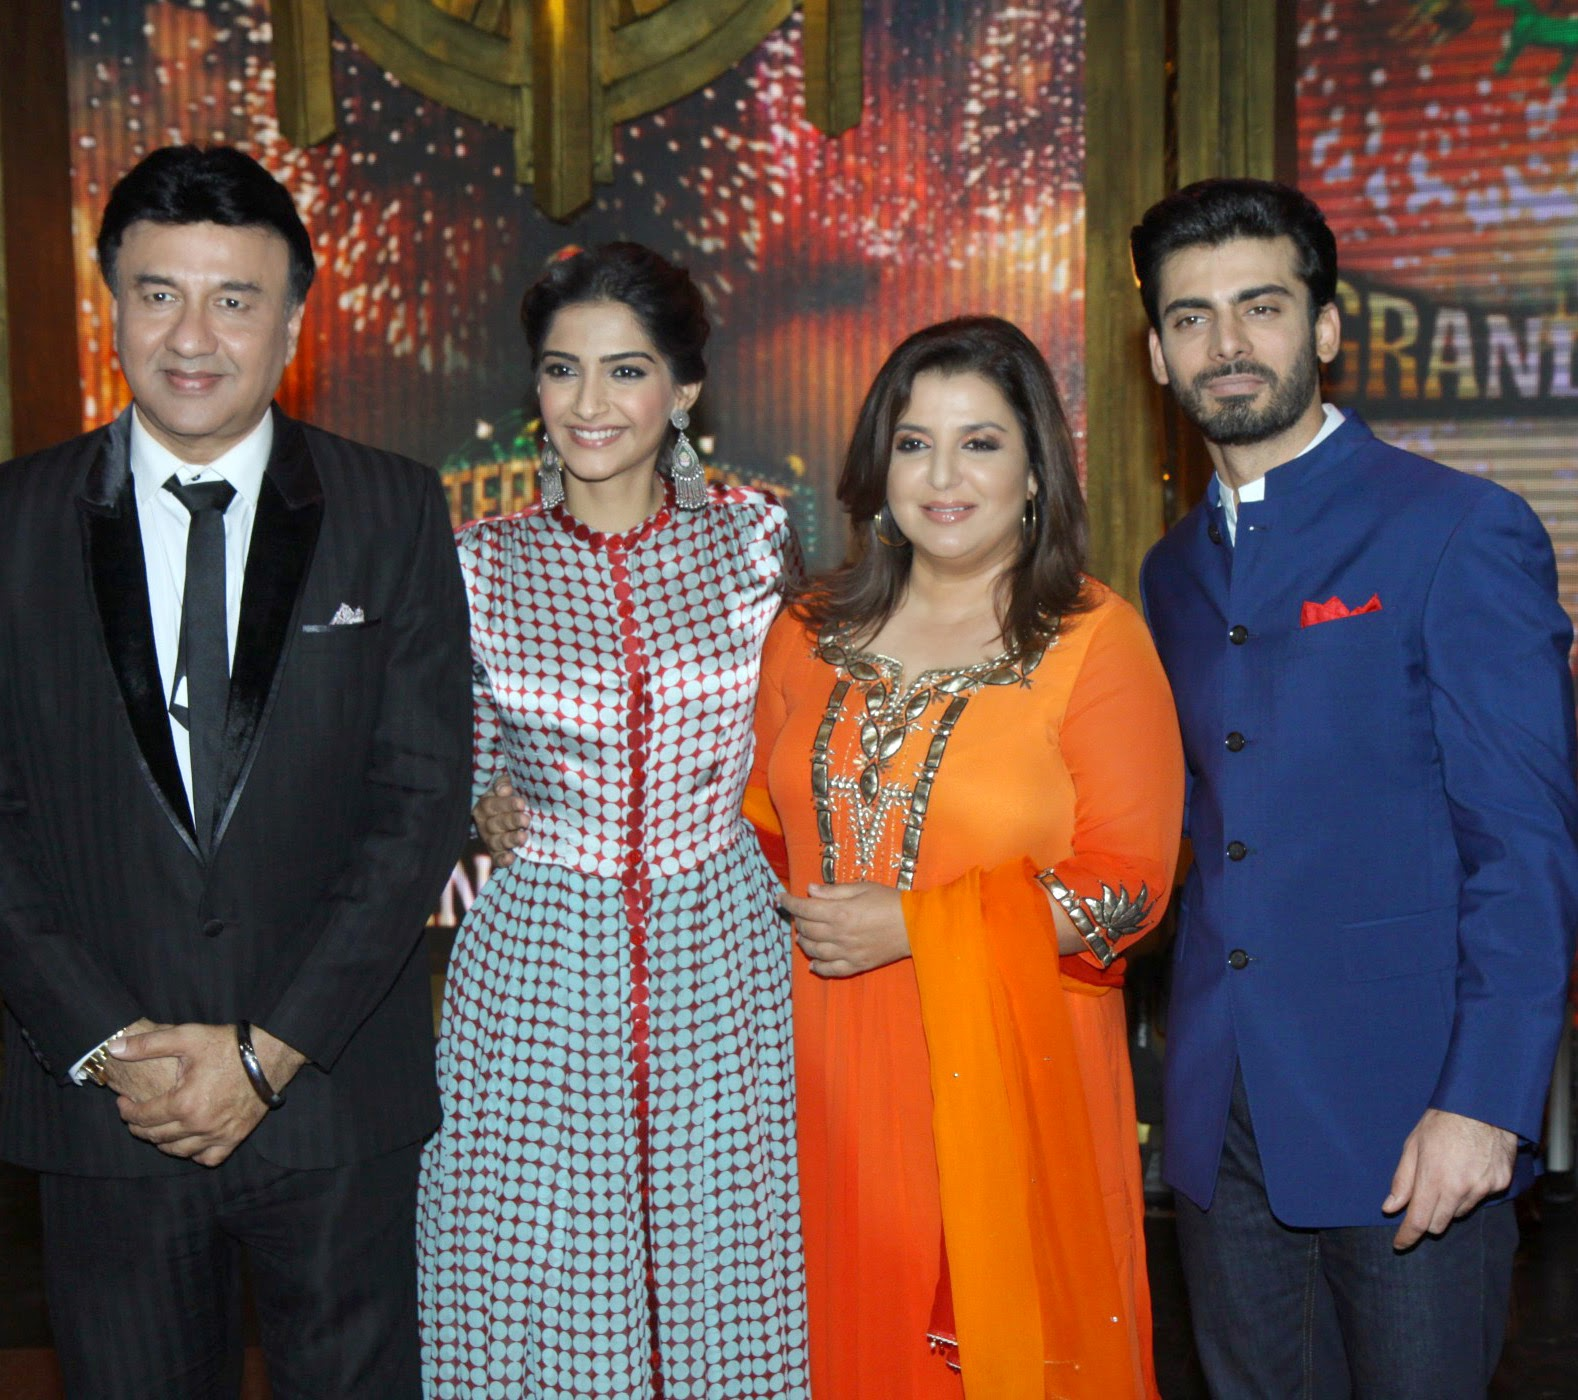 http://1.bp.blogspot.com/-E8nqlZirlWk/U9Ze5wGn5JI/AAAAAAABv_Q/oKKwt-Gocfg/s1600/+Sonam+&+Fawad+Khan+at+Promotion+of+%27Khoobsurat%27+on+Entertainment+Ke+Liye+Kuch+Bhi+Karega+(1).JPG